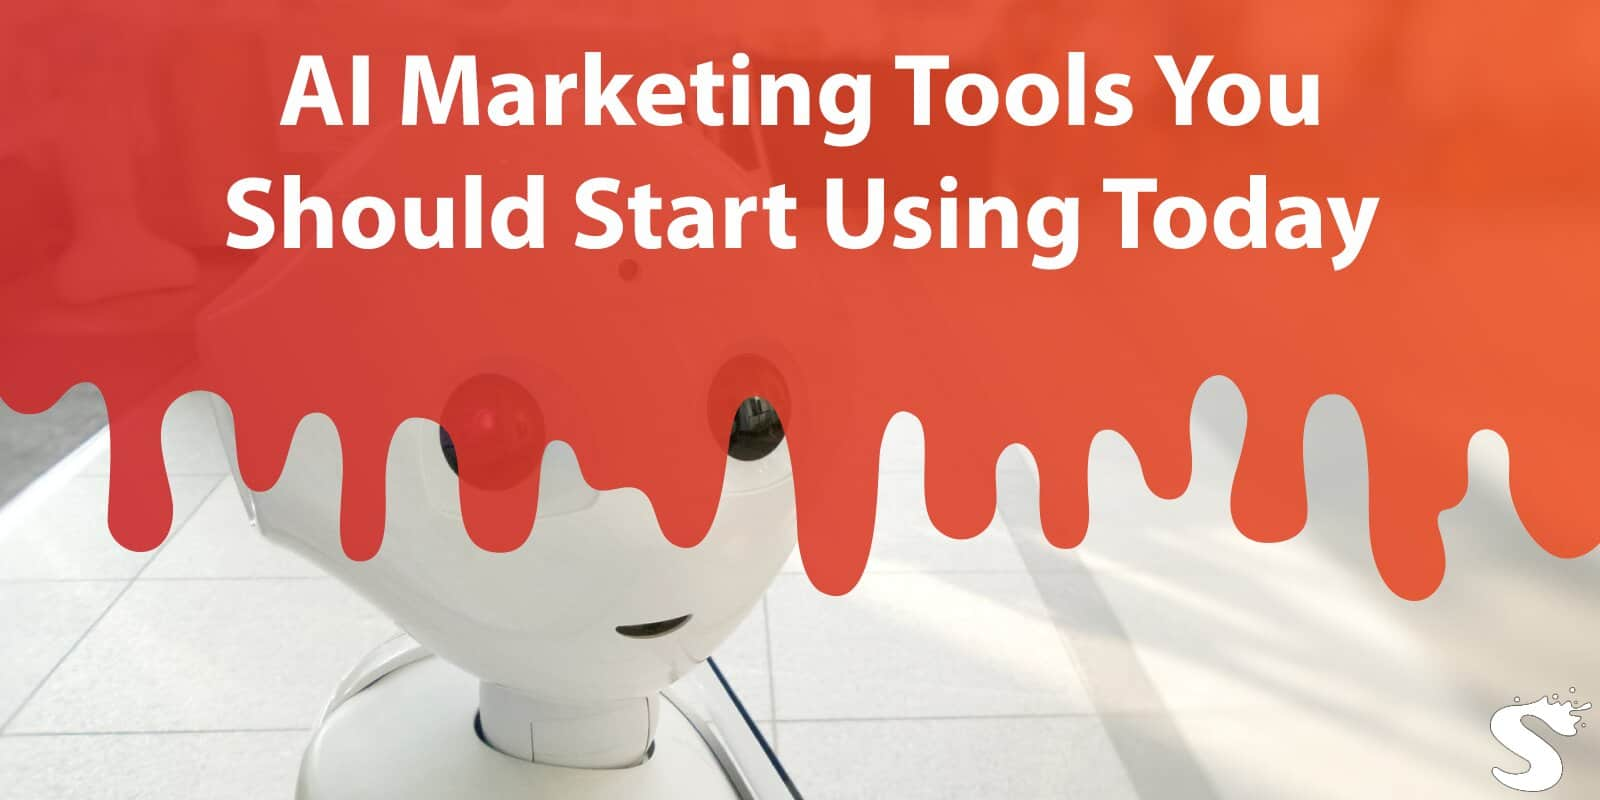 AI Marketing Tools You Should Start Using Today if You Want to Beat the Competition With Ease